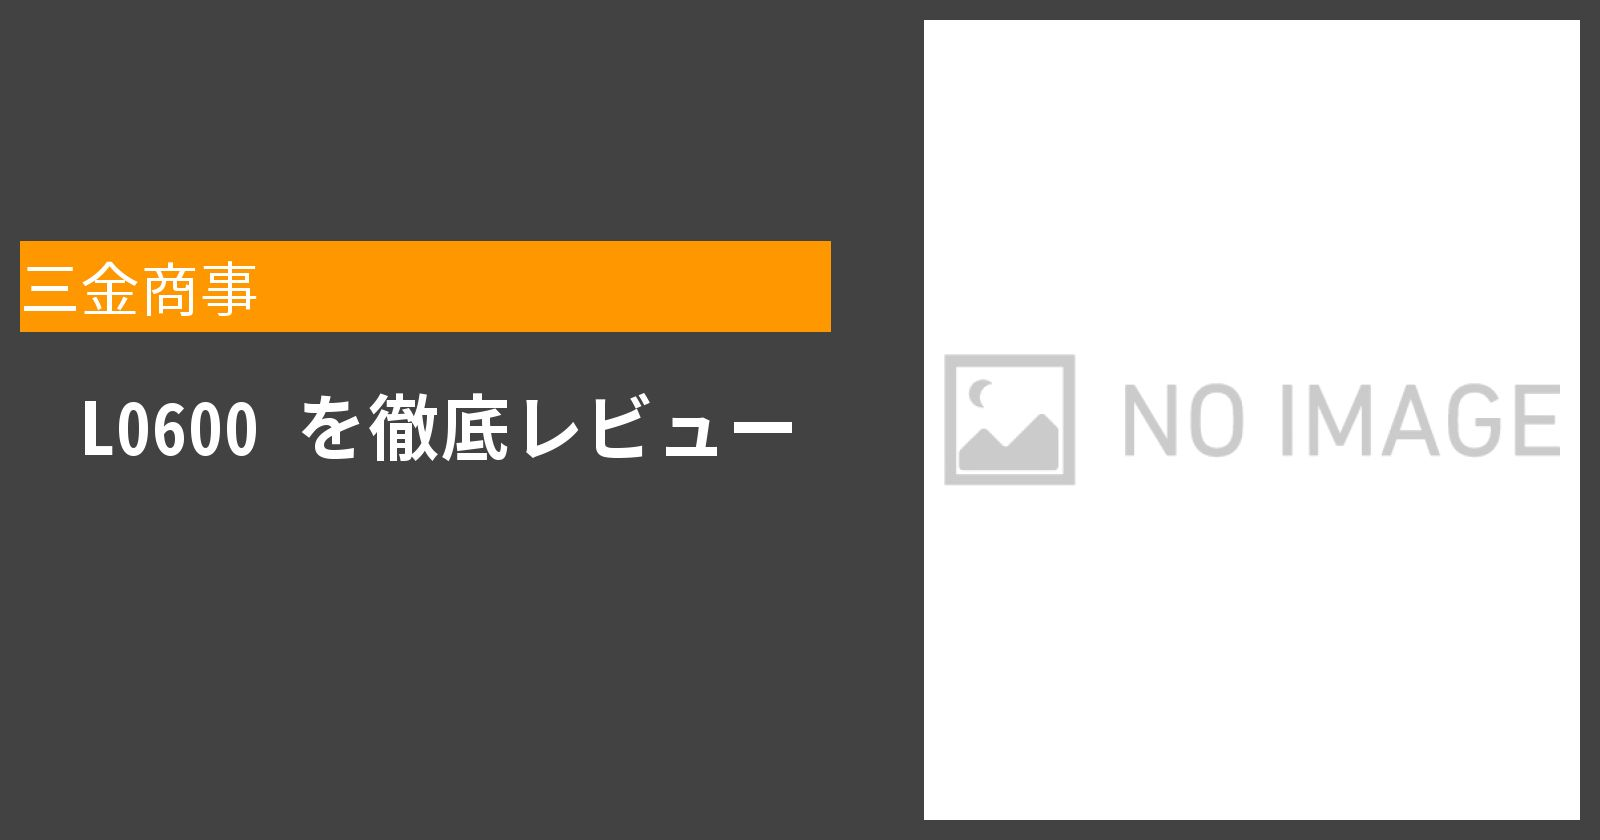 L0600を徹底評価